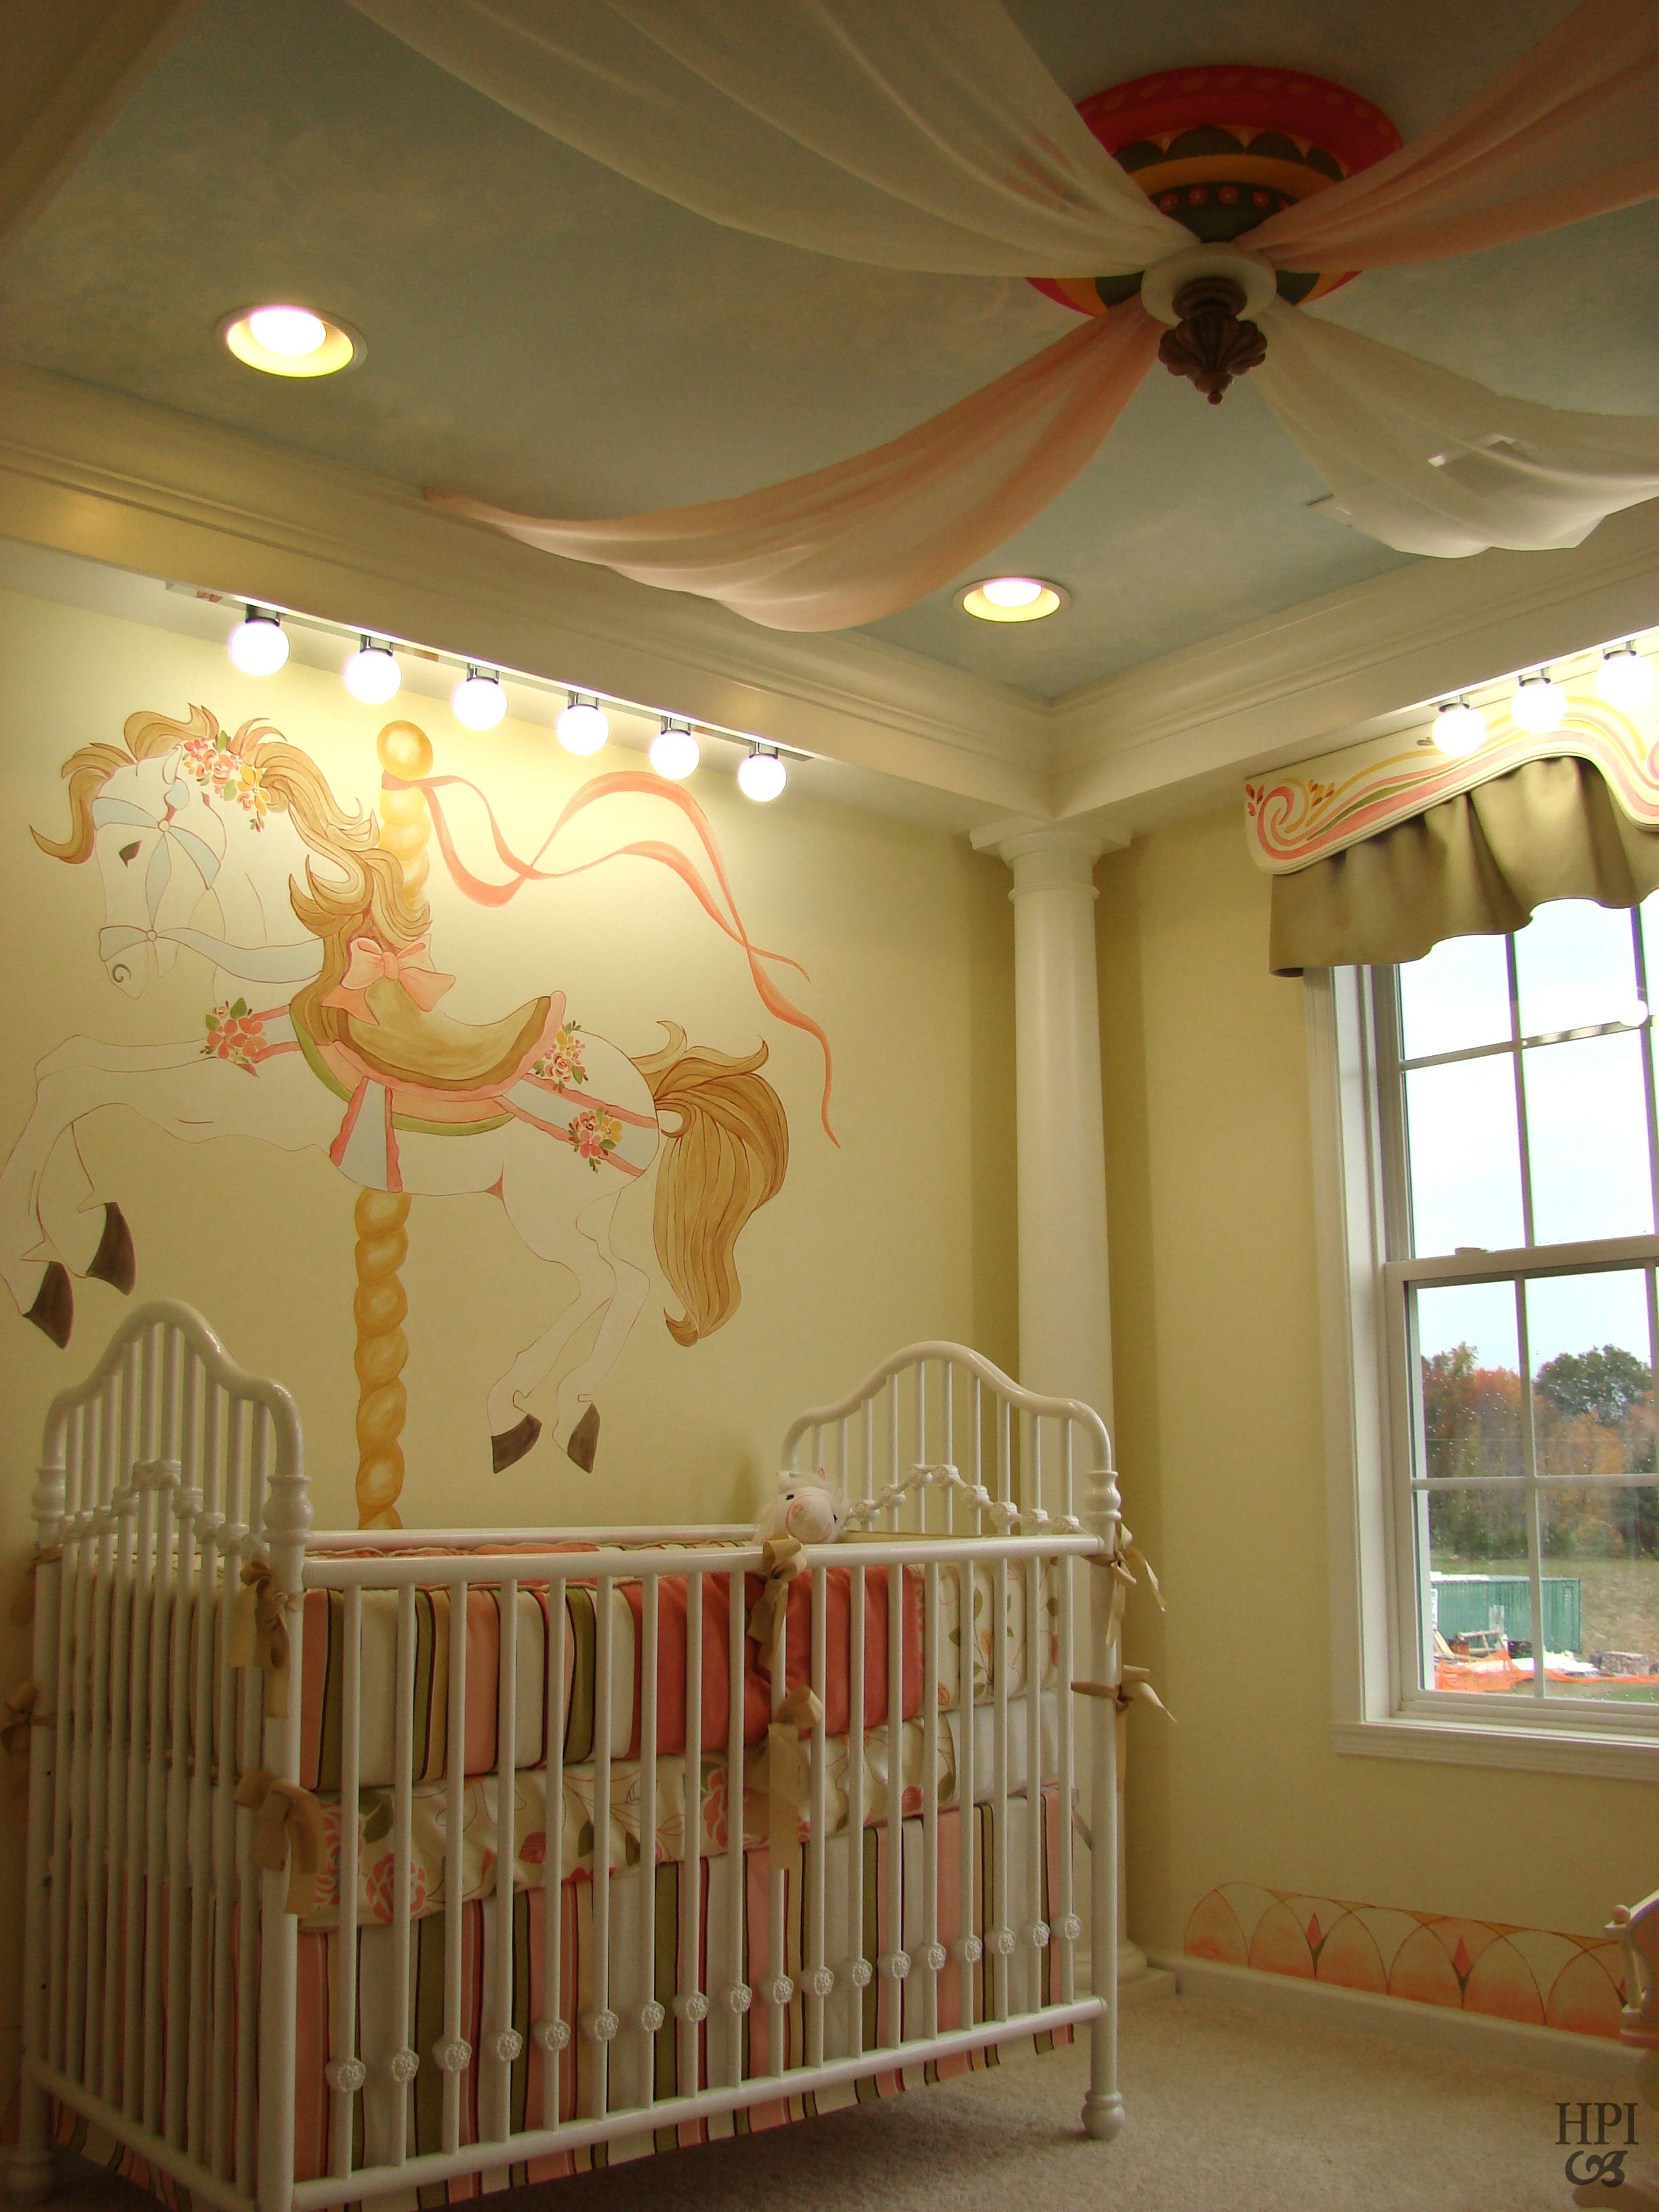 Decorating theme bedrooms maries manor window treatments curtains - Find This Pin And More On Hpi Projects Themed Rooms